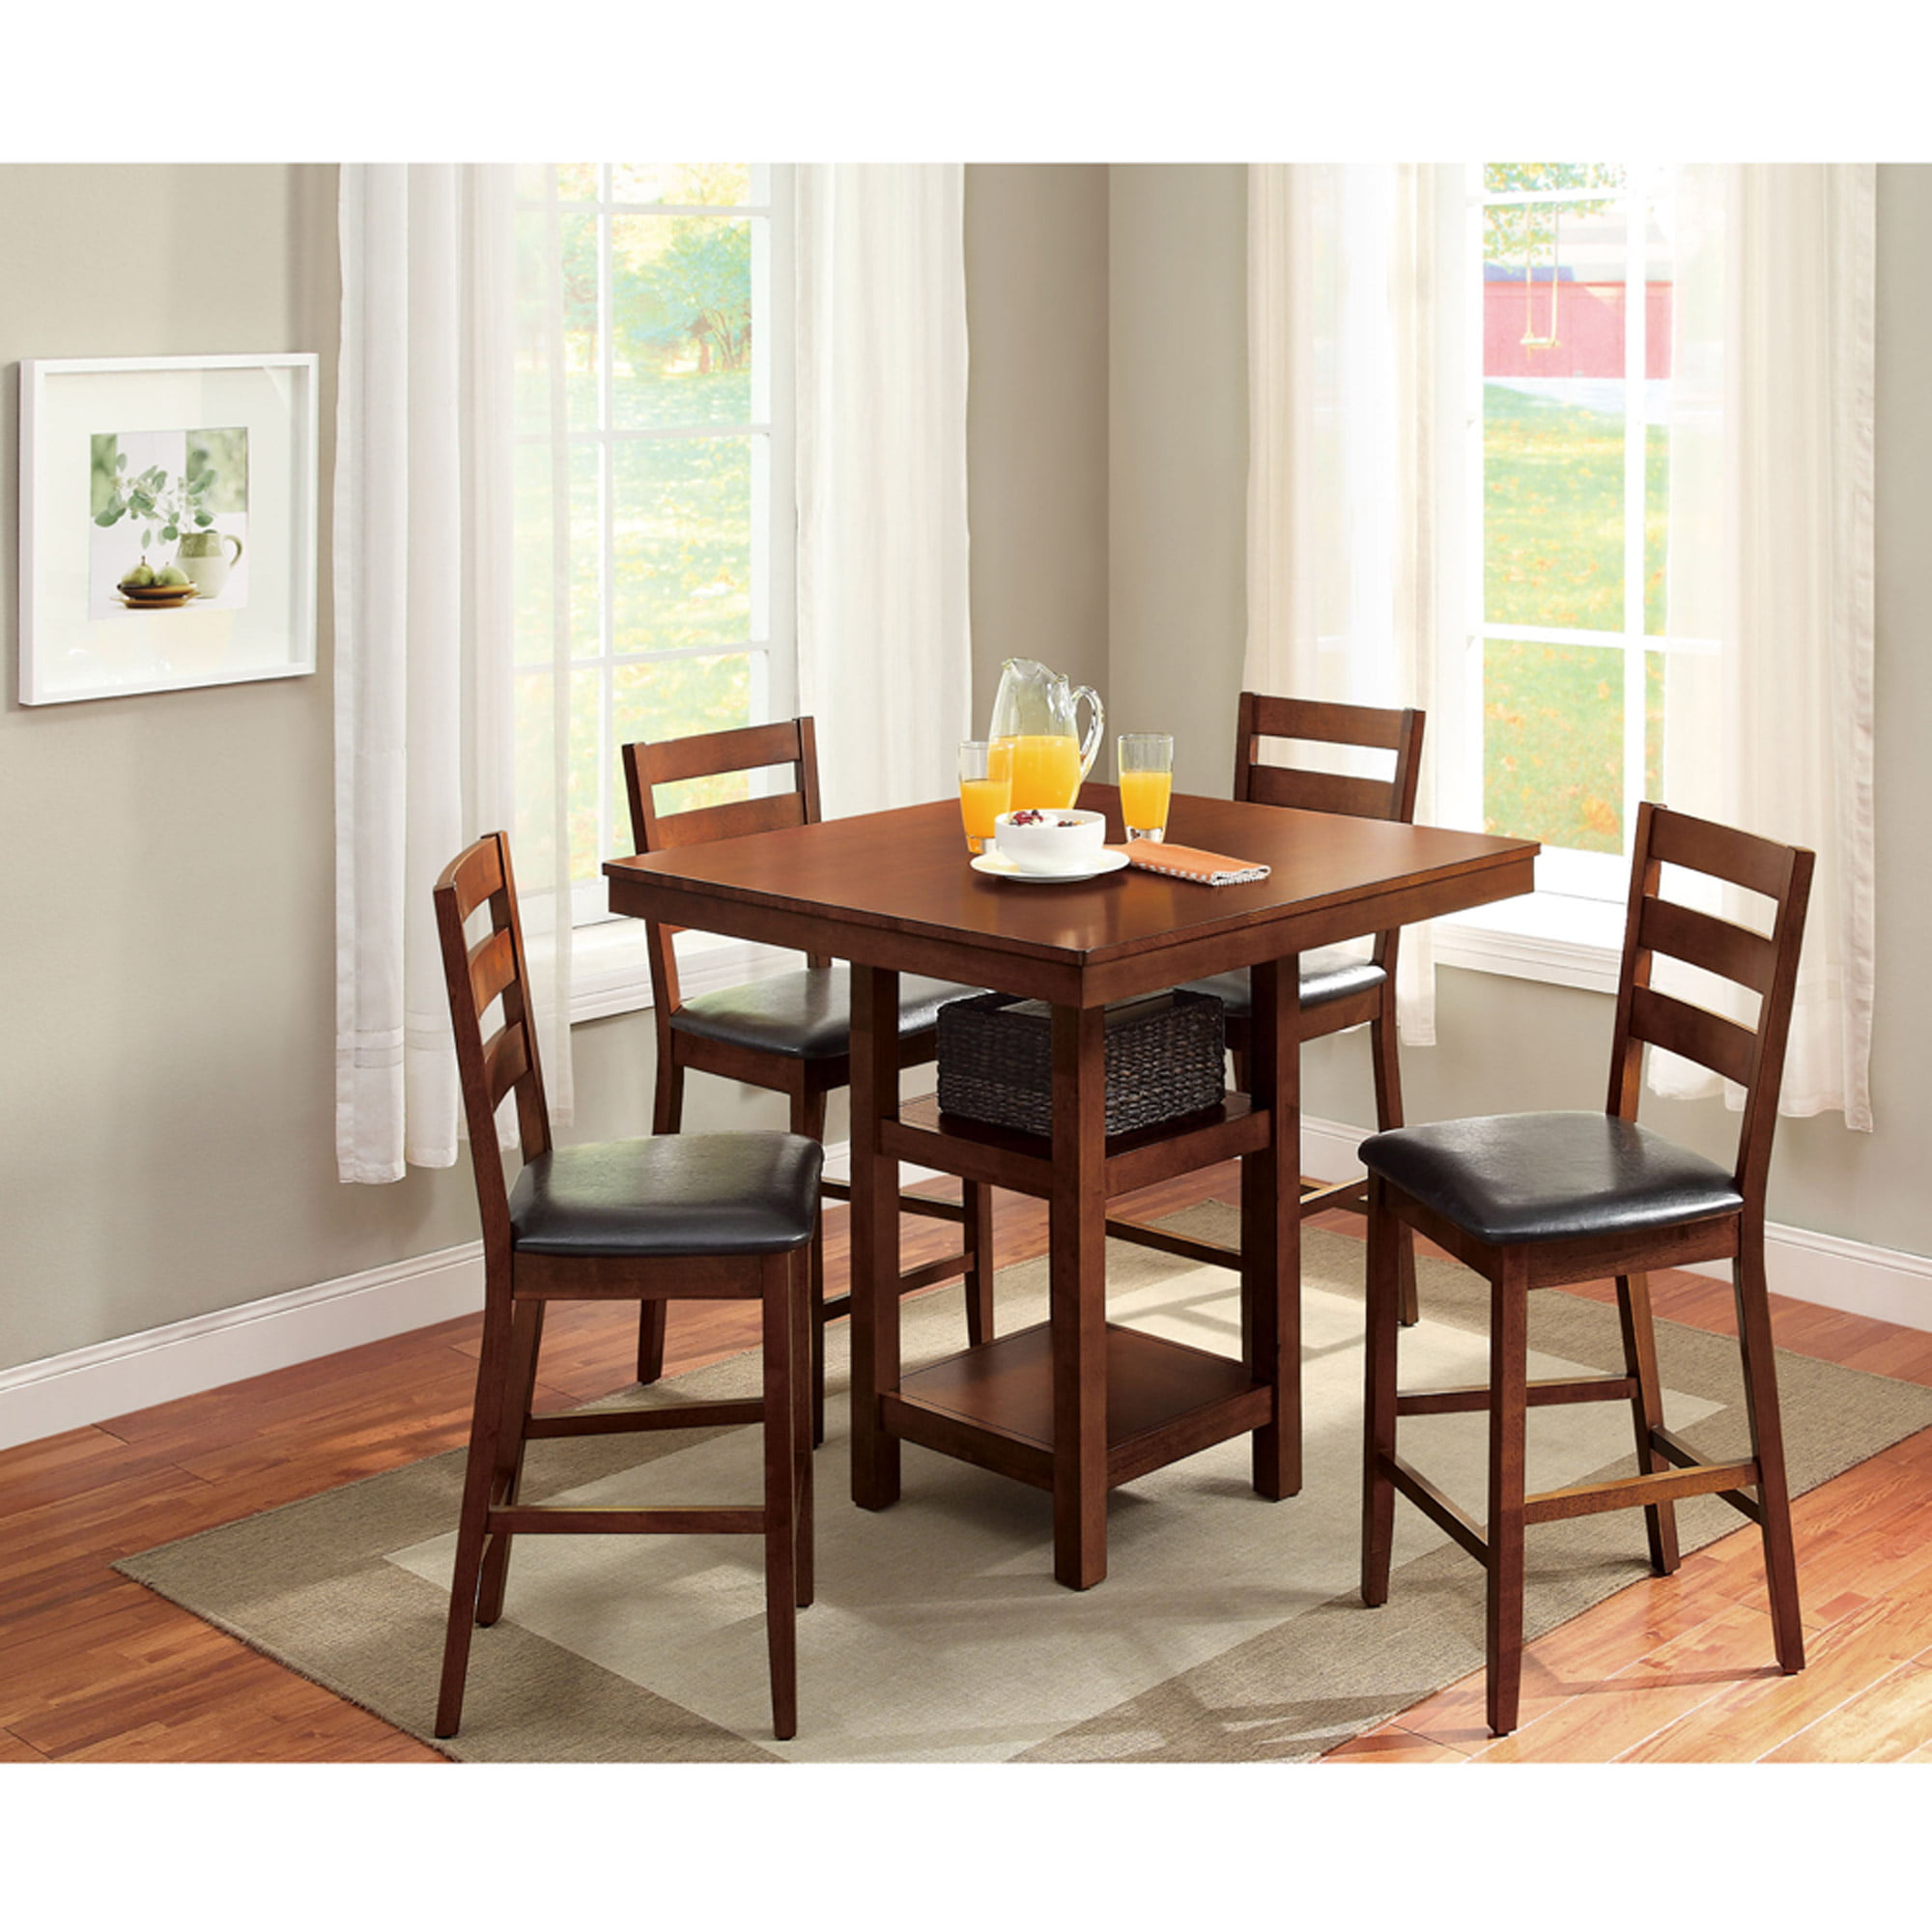 Better Homes U0026 Gardens Dalton Park 5 Piece Counter Height Dining Set    Walmart.com